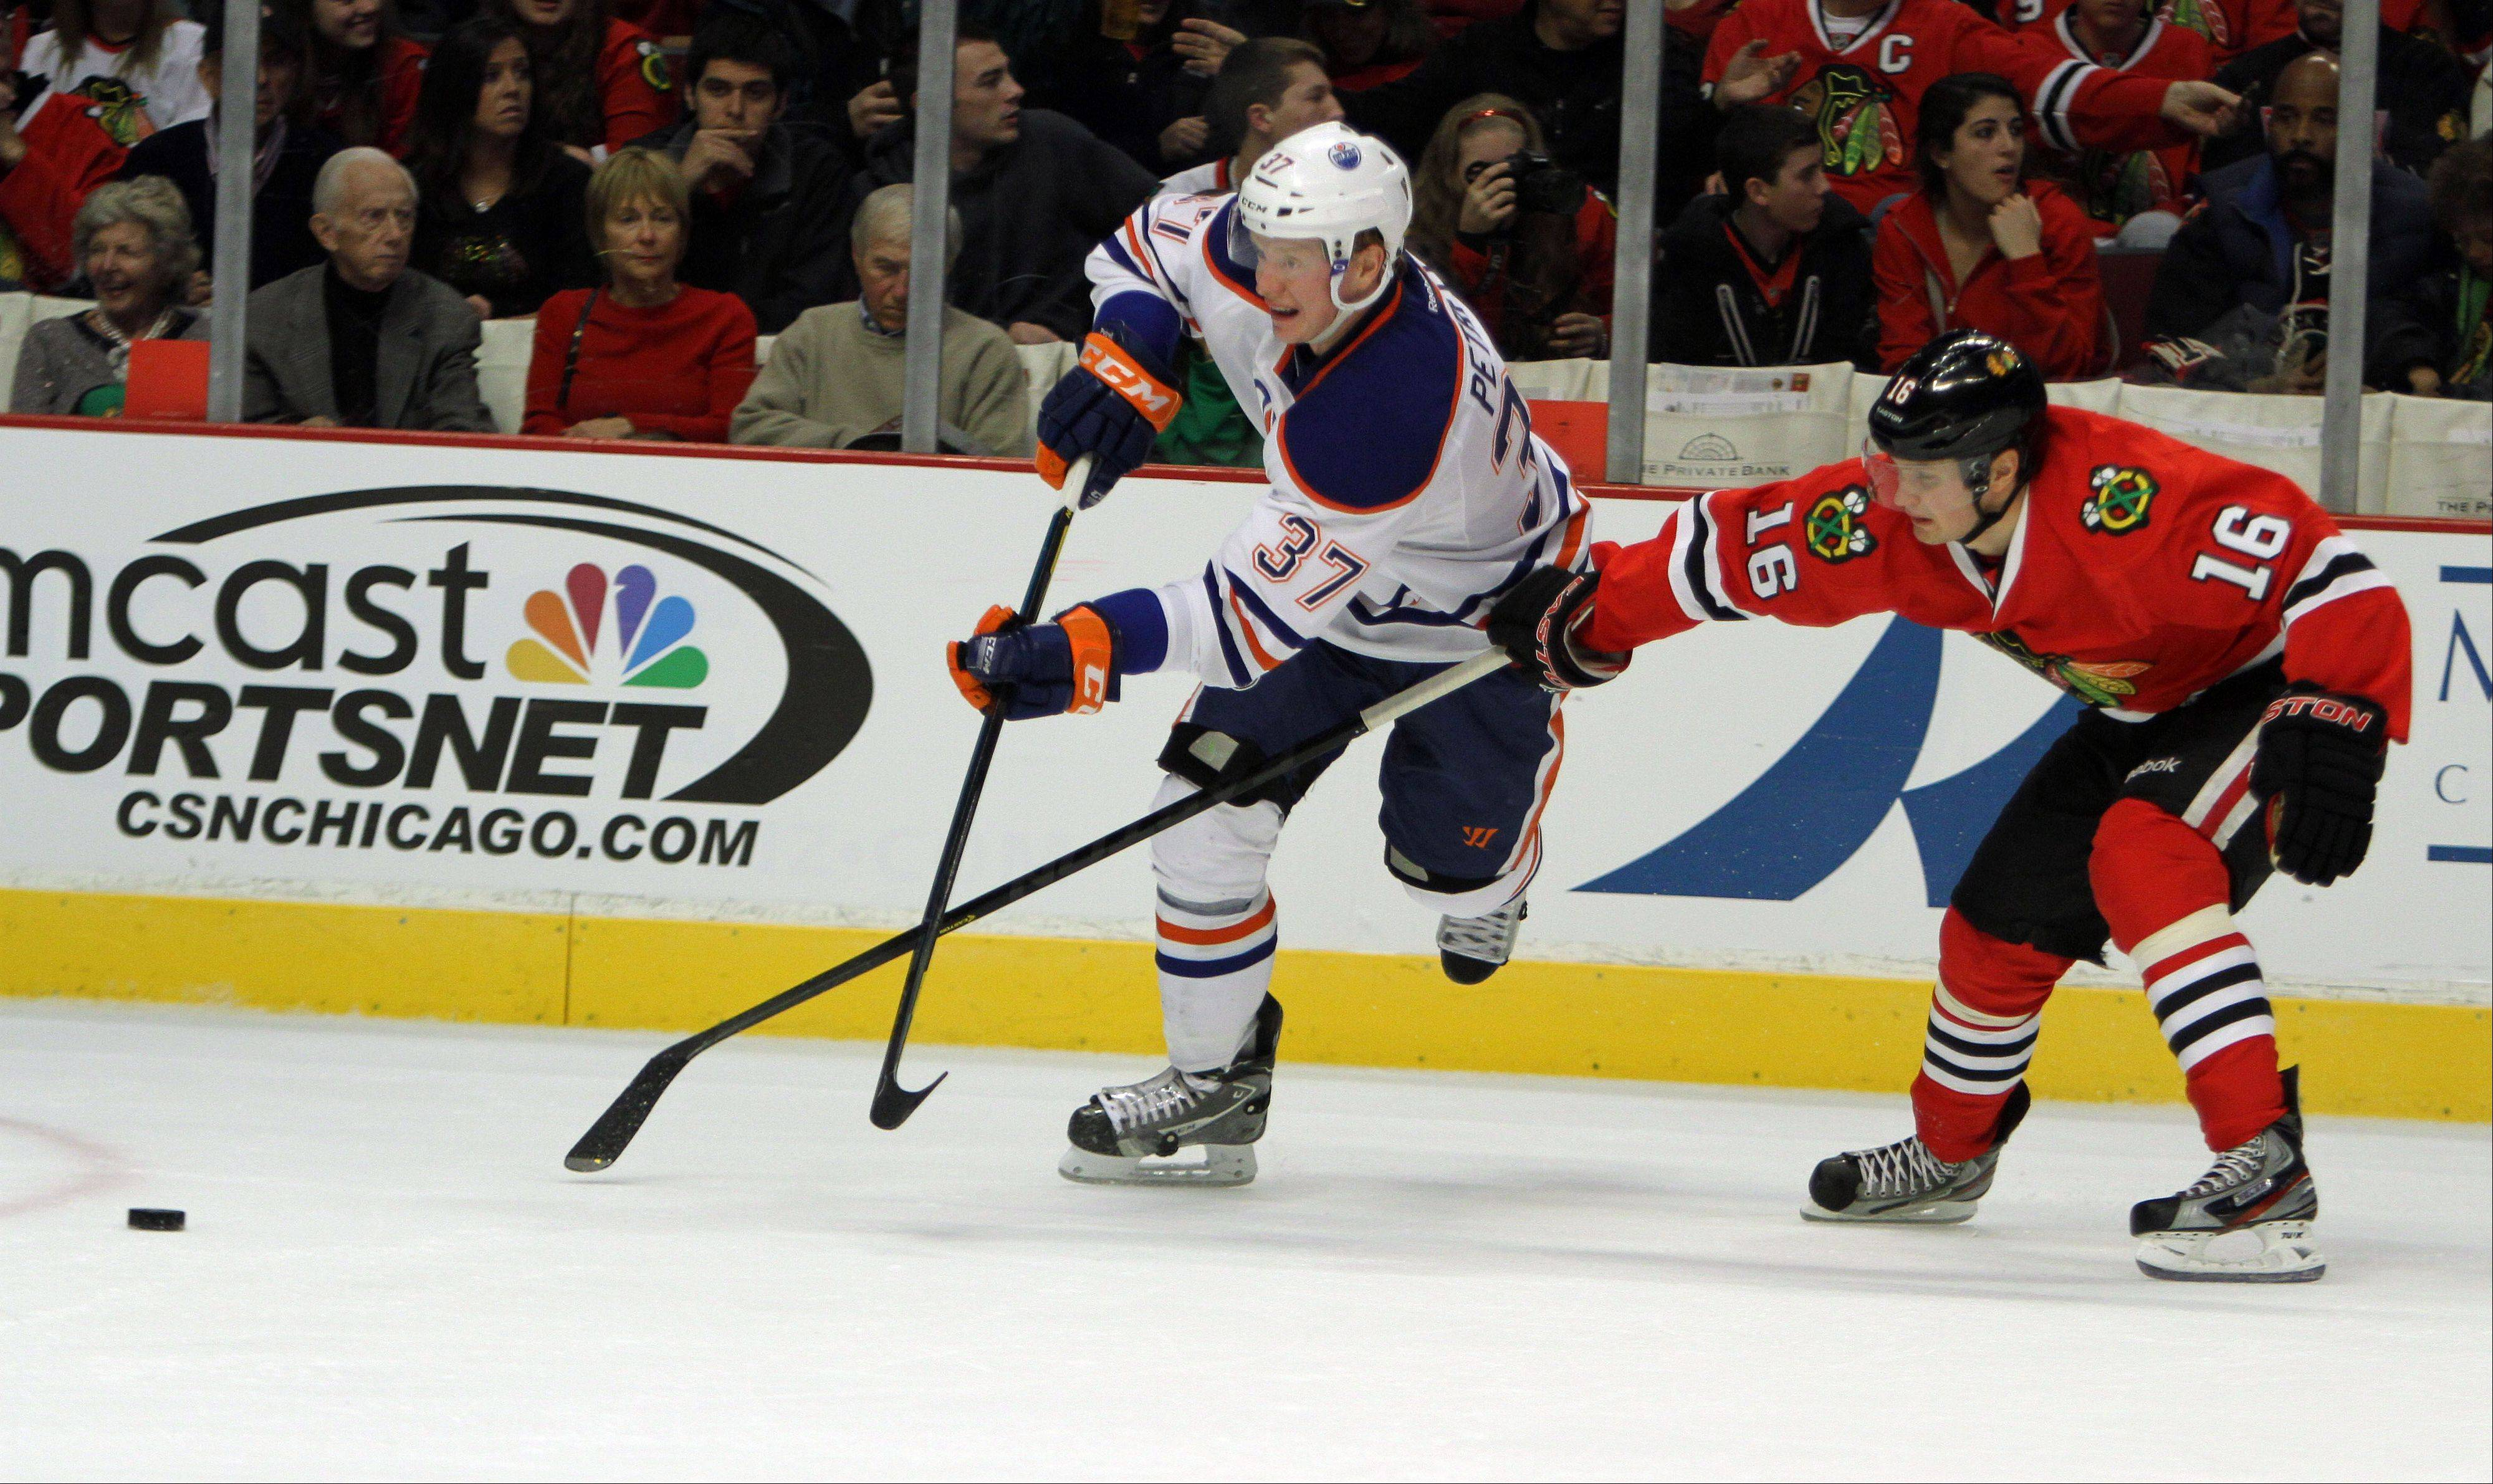 Chicago Blackhawks center Marcus Kruger, right, tries to disrupt Edmonton Oilers center Lennart Petrell during their game Sunday night at the United Center in Chicago.